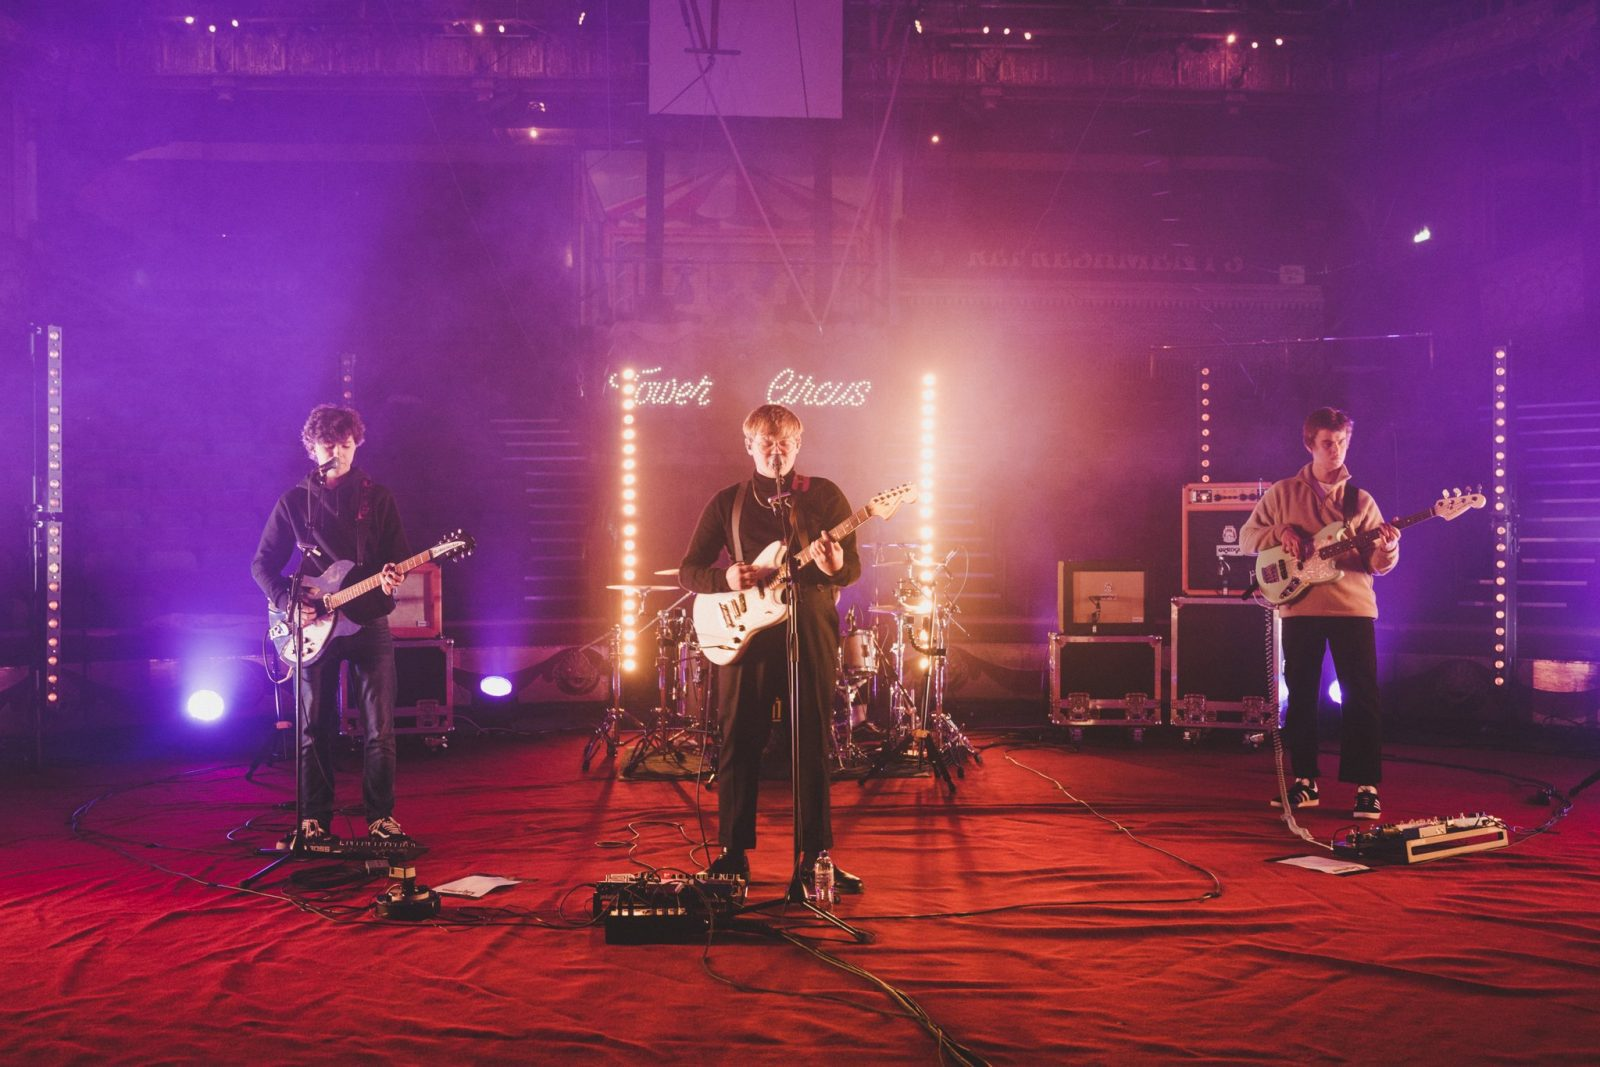 Tickets for The Lathums' Blackpool show are on sale today, The Manc